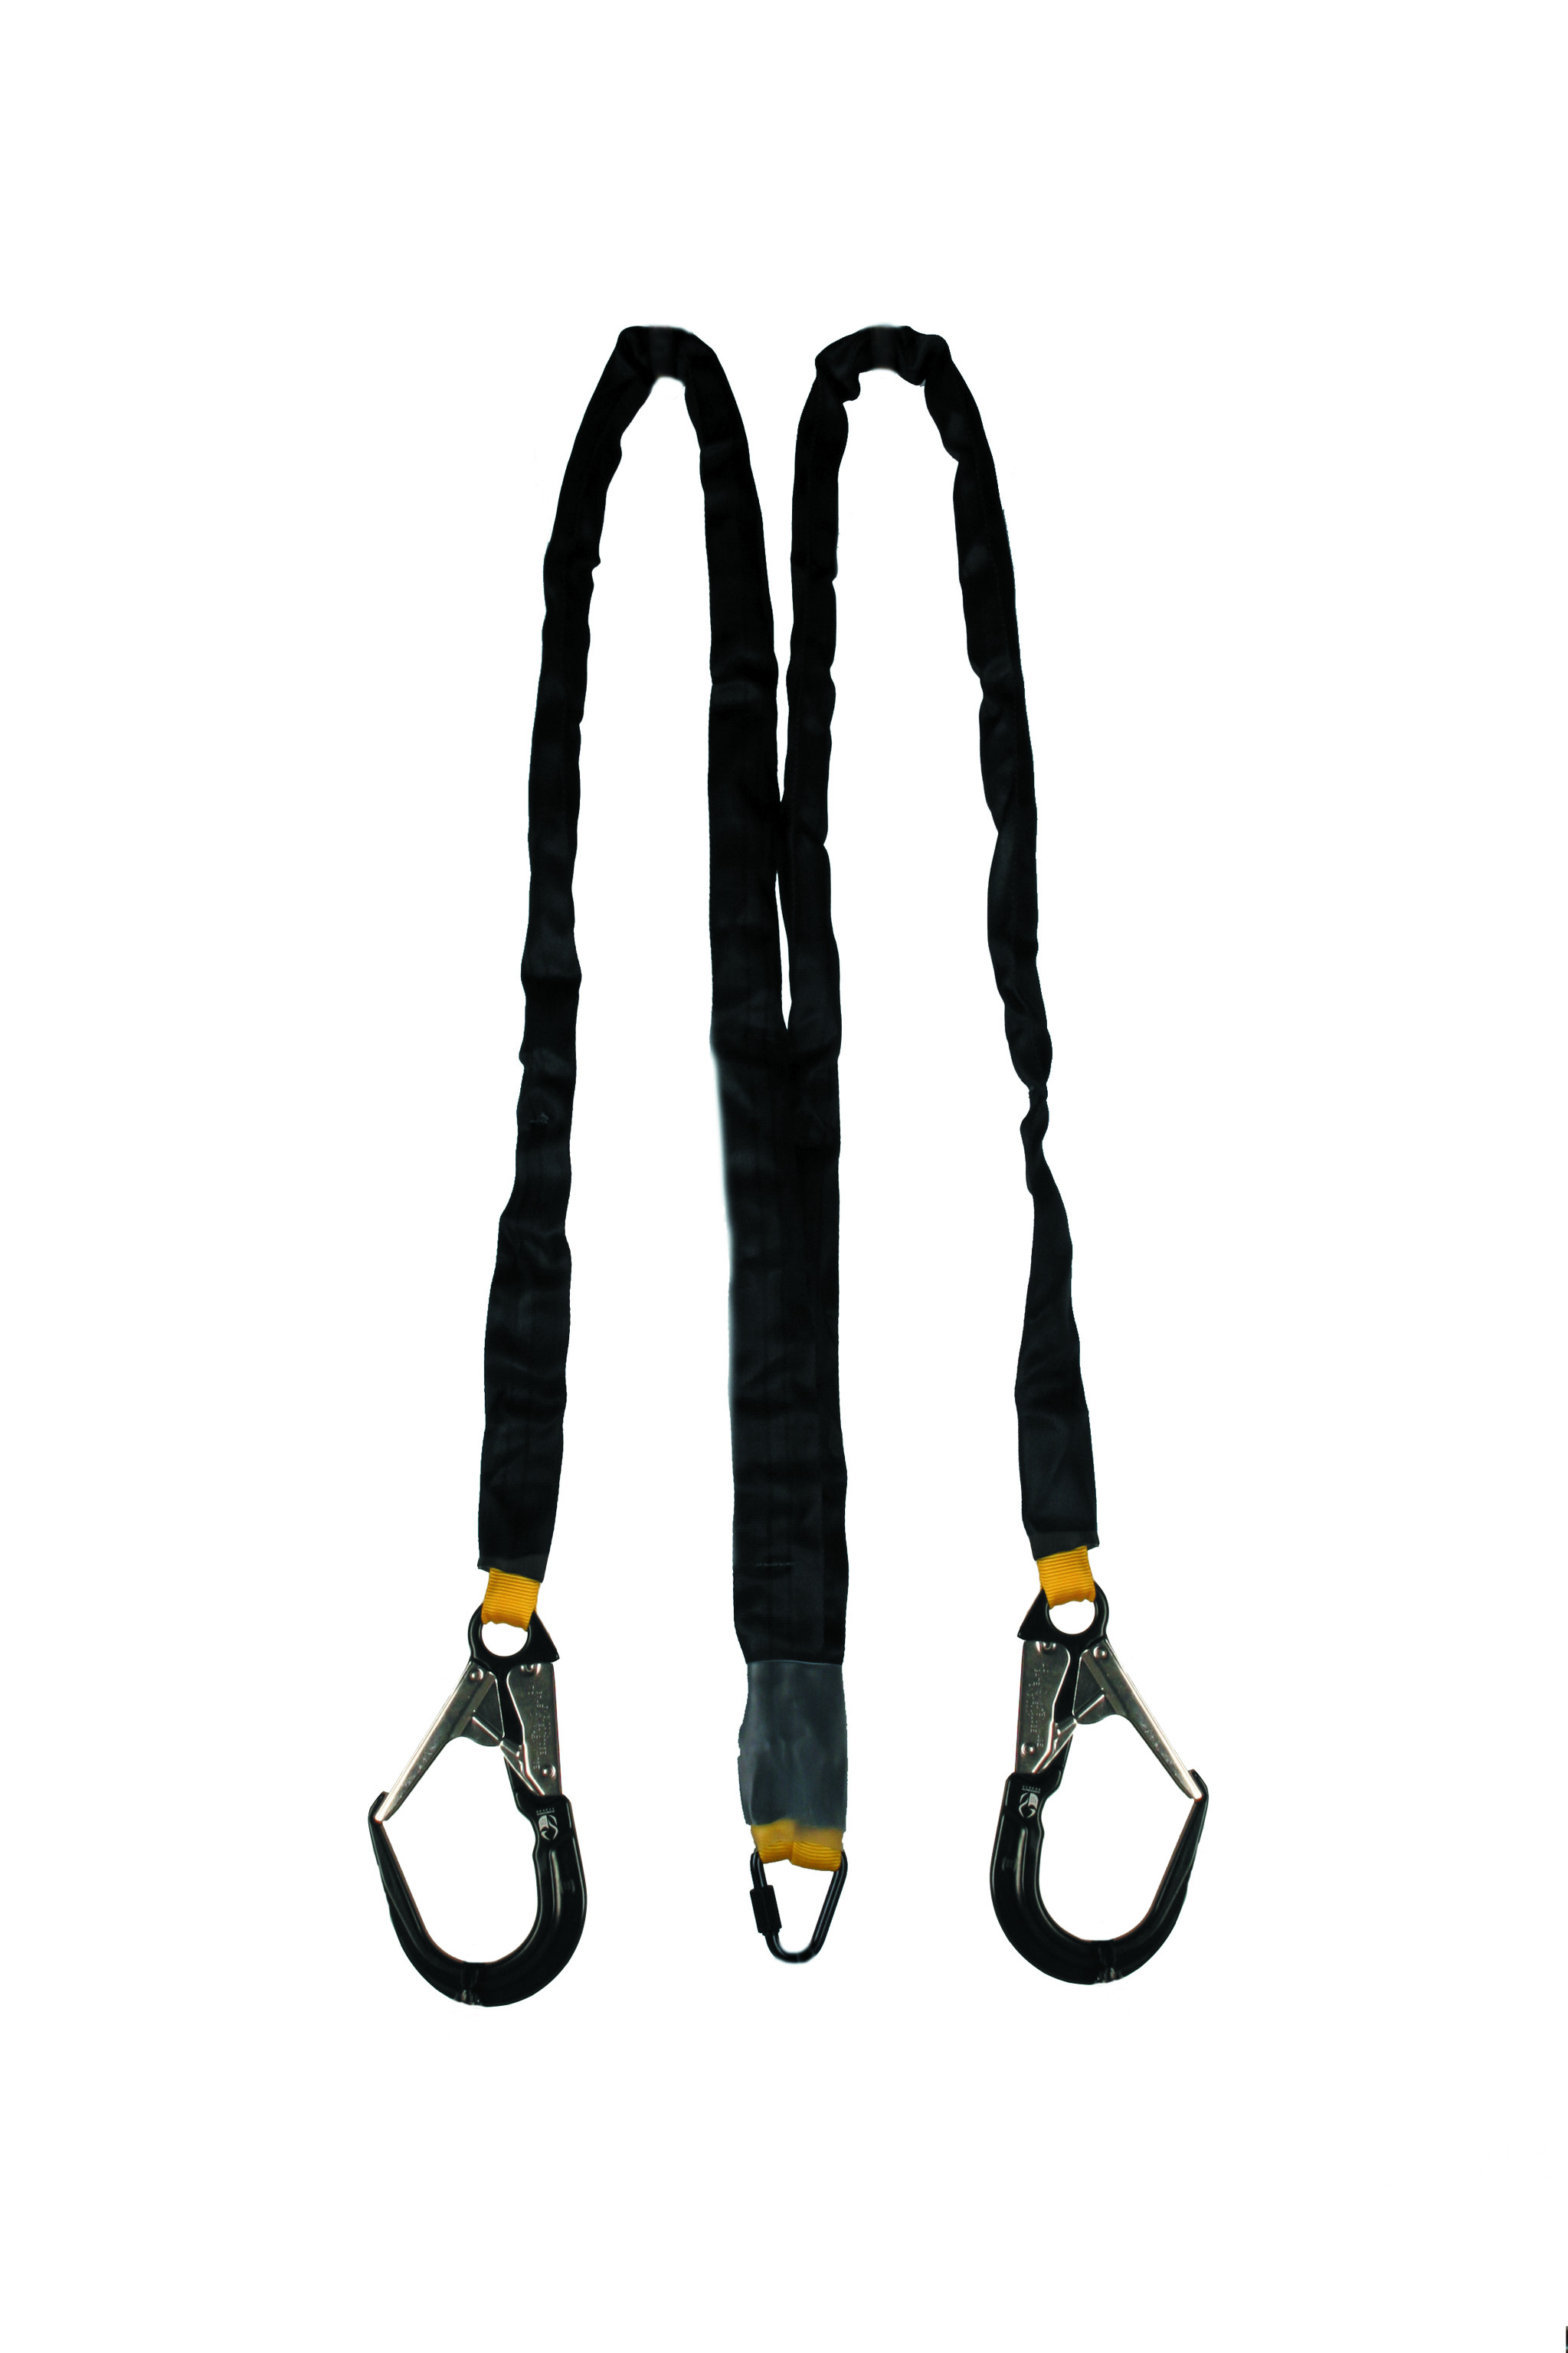 energy absorbing twin lanyard with scaffold hook